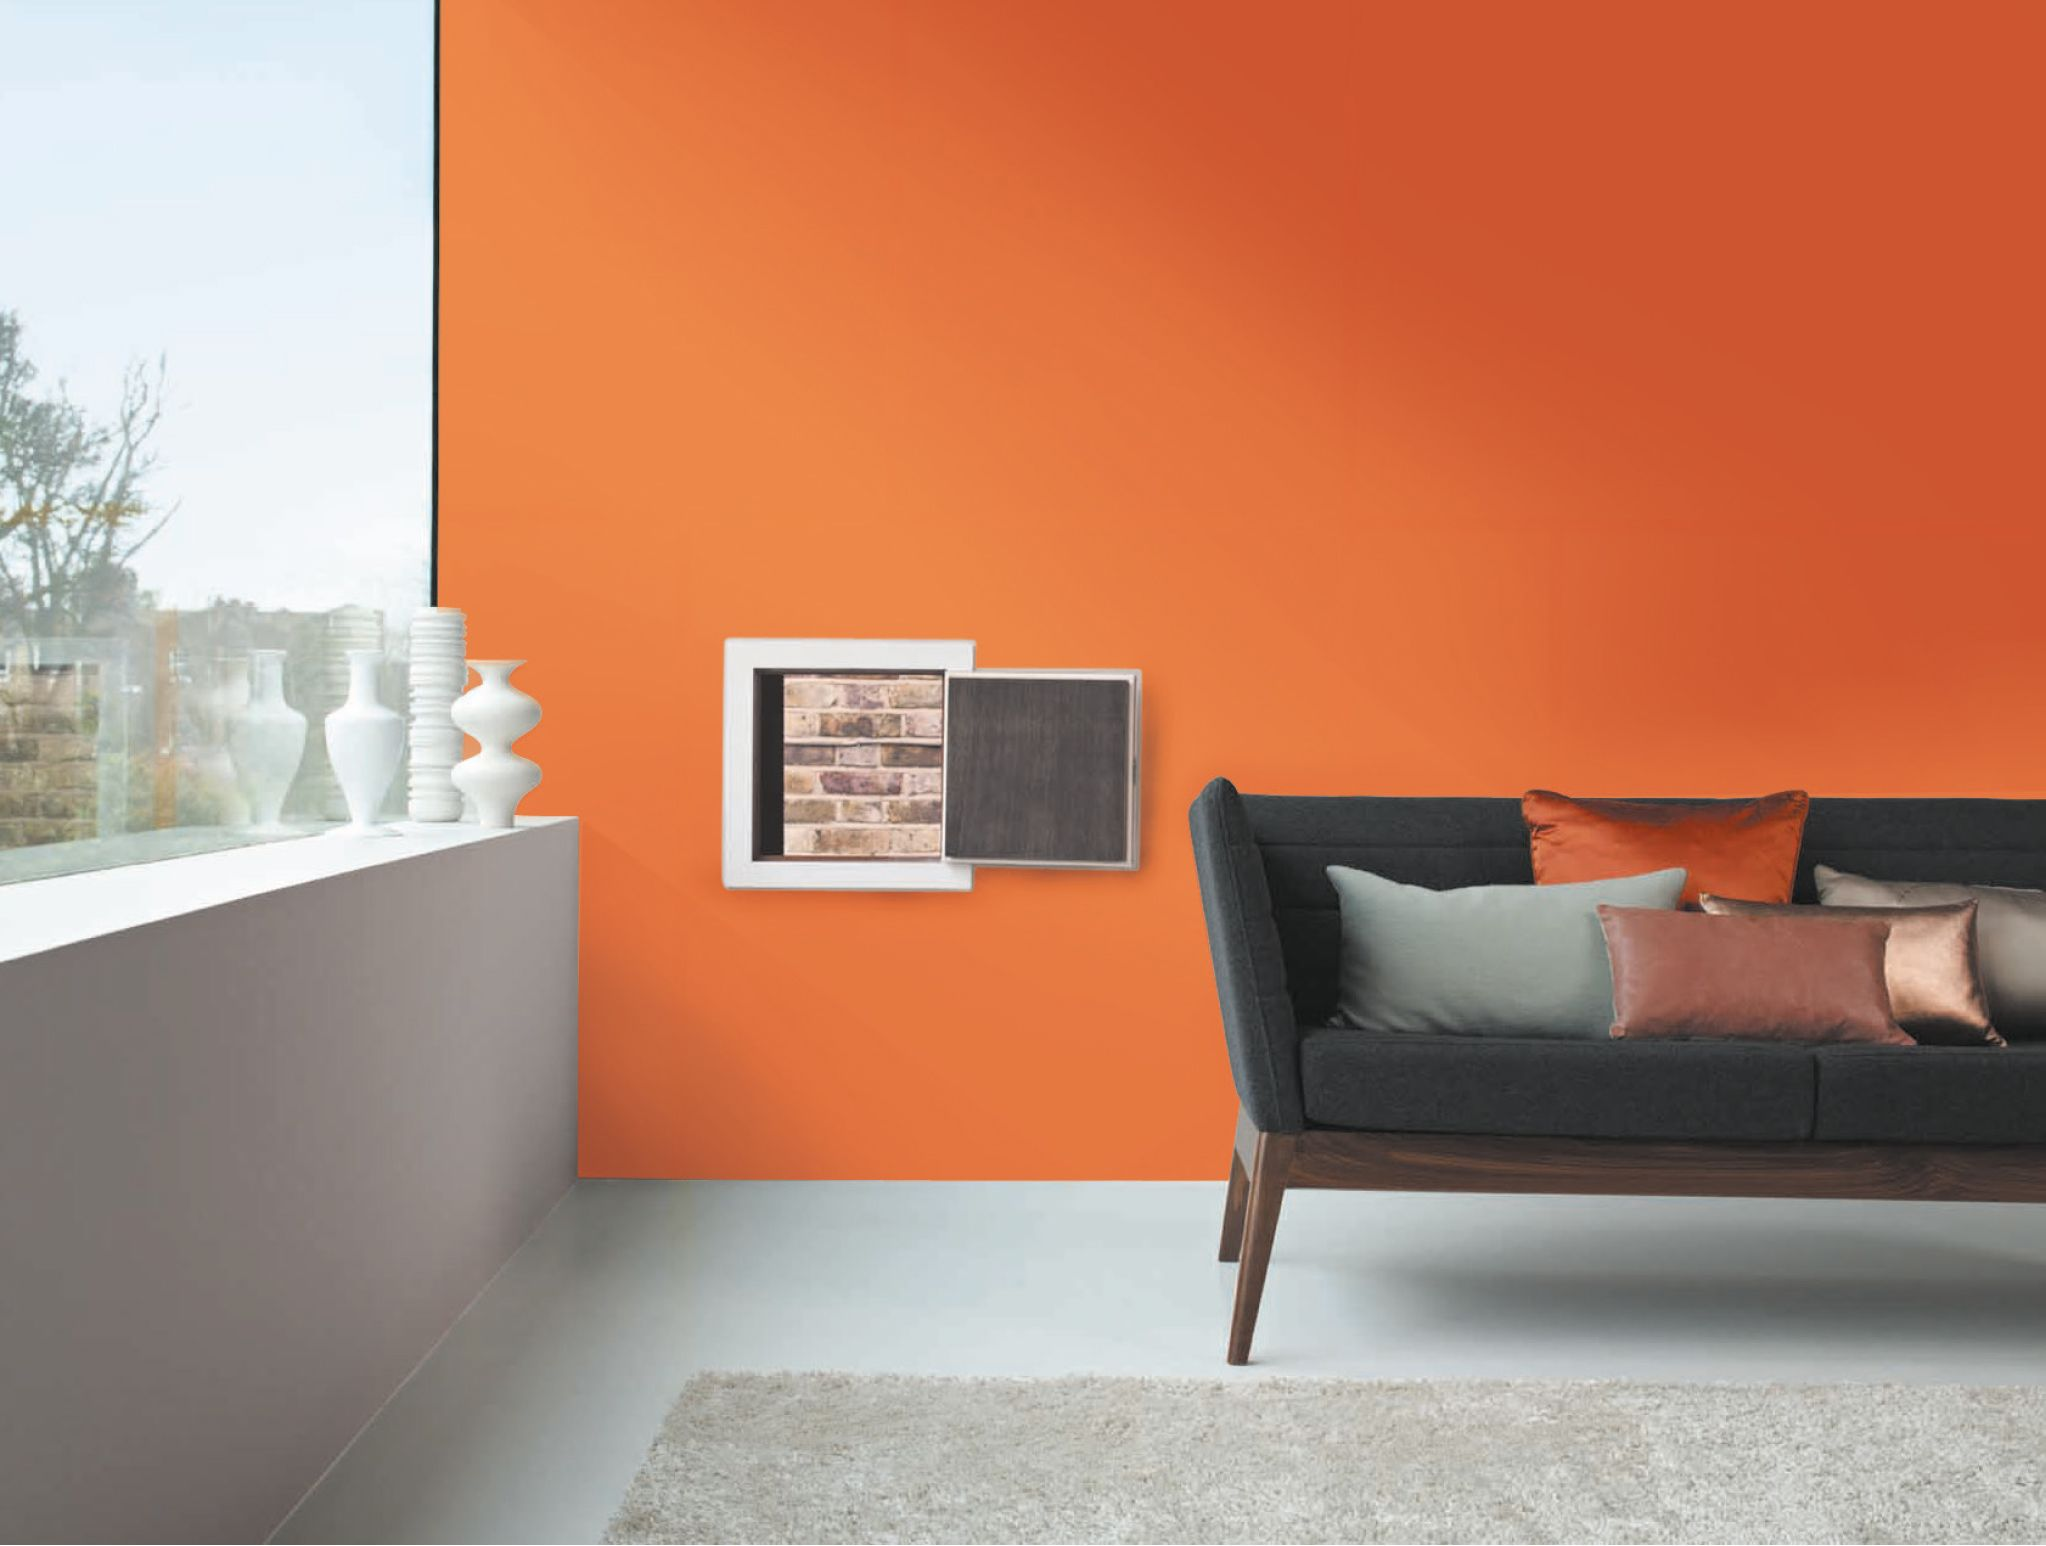 couleur de l 39 ann e 2015 dulux valentine l 39 orange confite salons pinterest dulux valentine. Black Bedroom Furniture Sets. Home Design Ideas